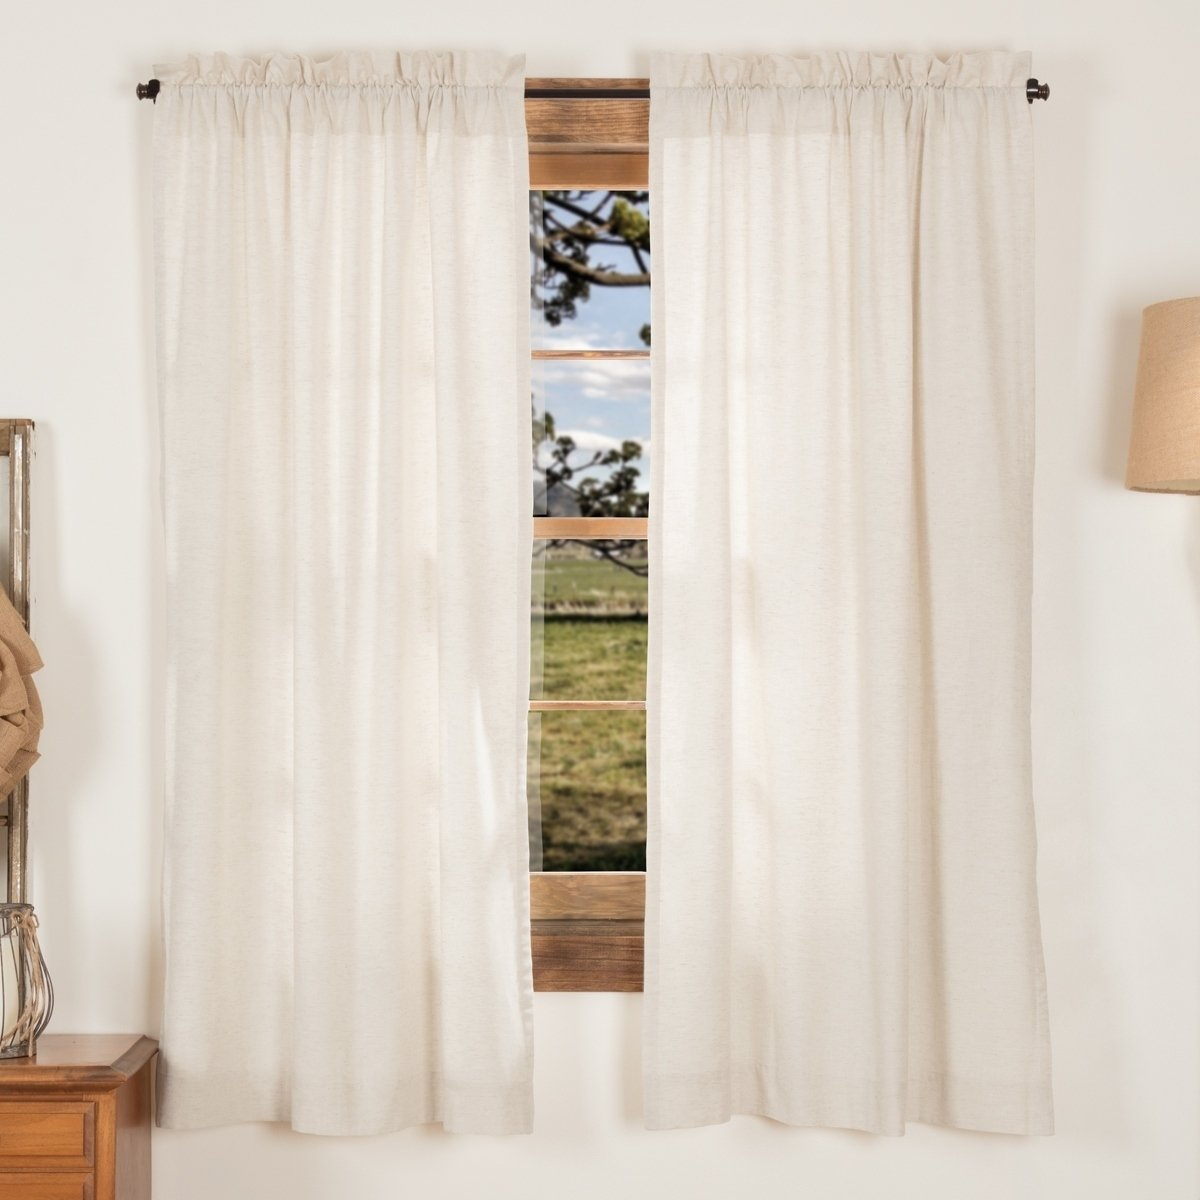 Petite Vhc Farmhouse French Country Curtains Simple Life In Simple Life Flax Tier Pairs (View 15 of 20)